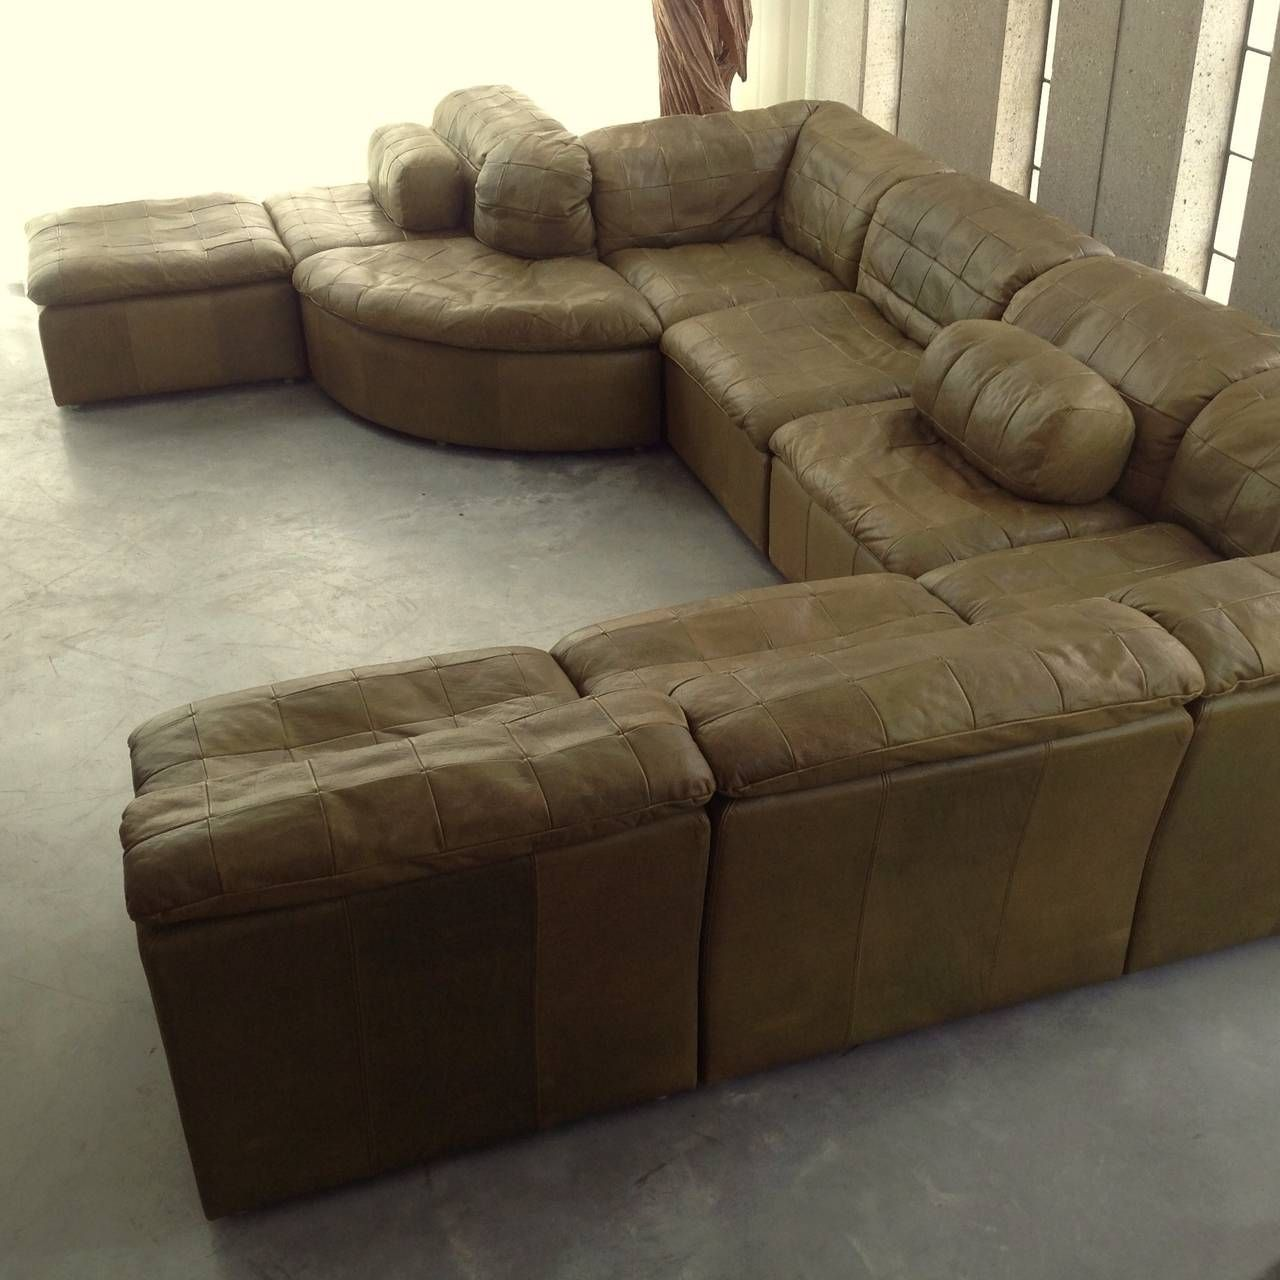 Olive Couch In 2020 Best Leather Sofa Olive Green Couches Couch